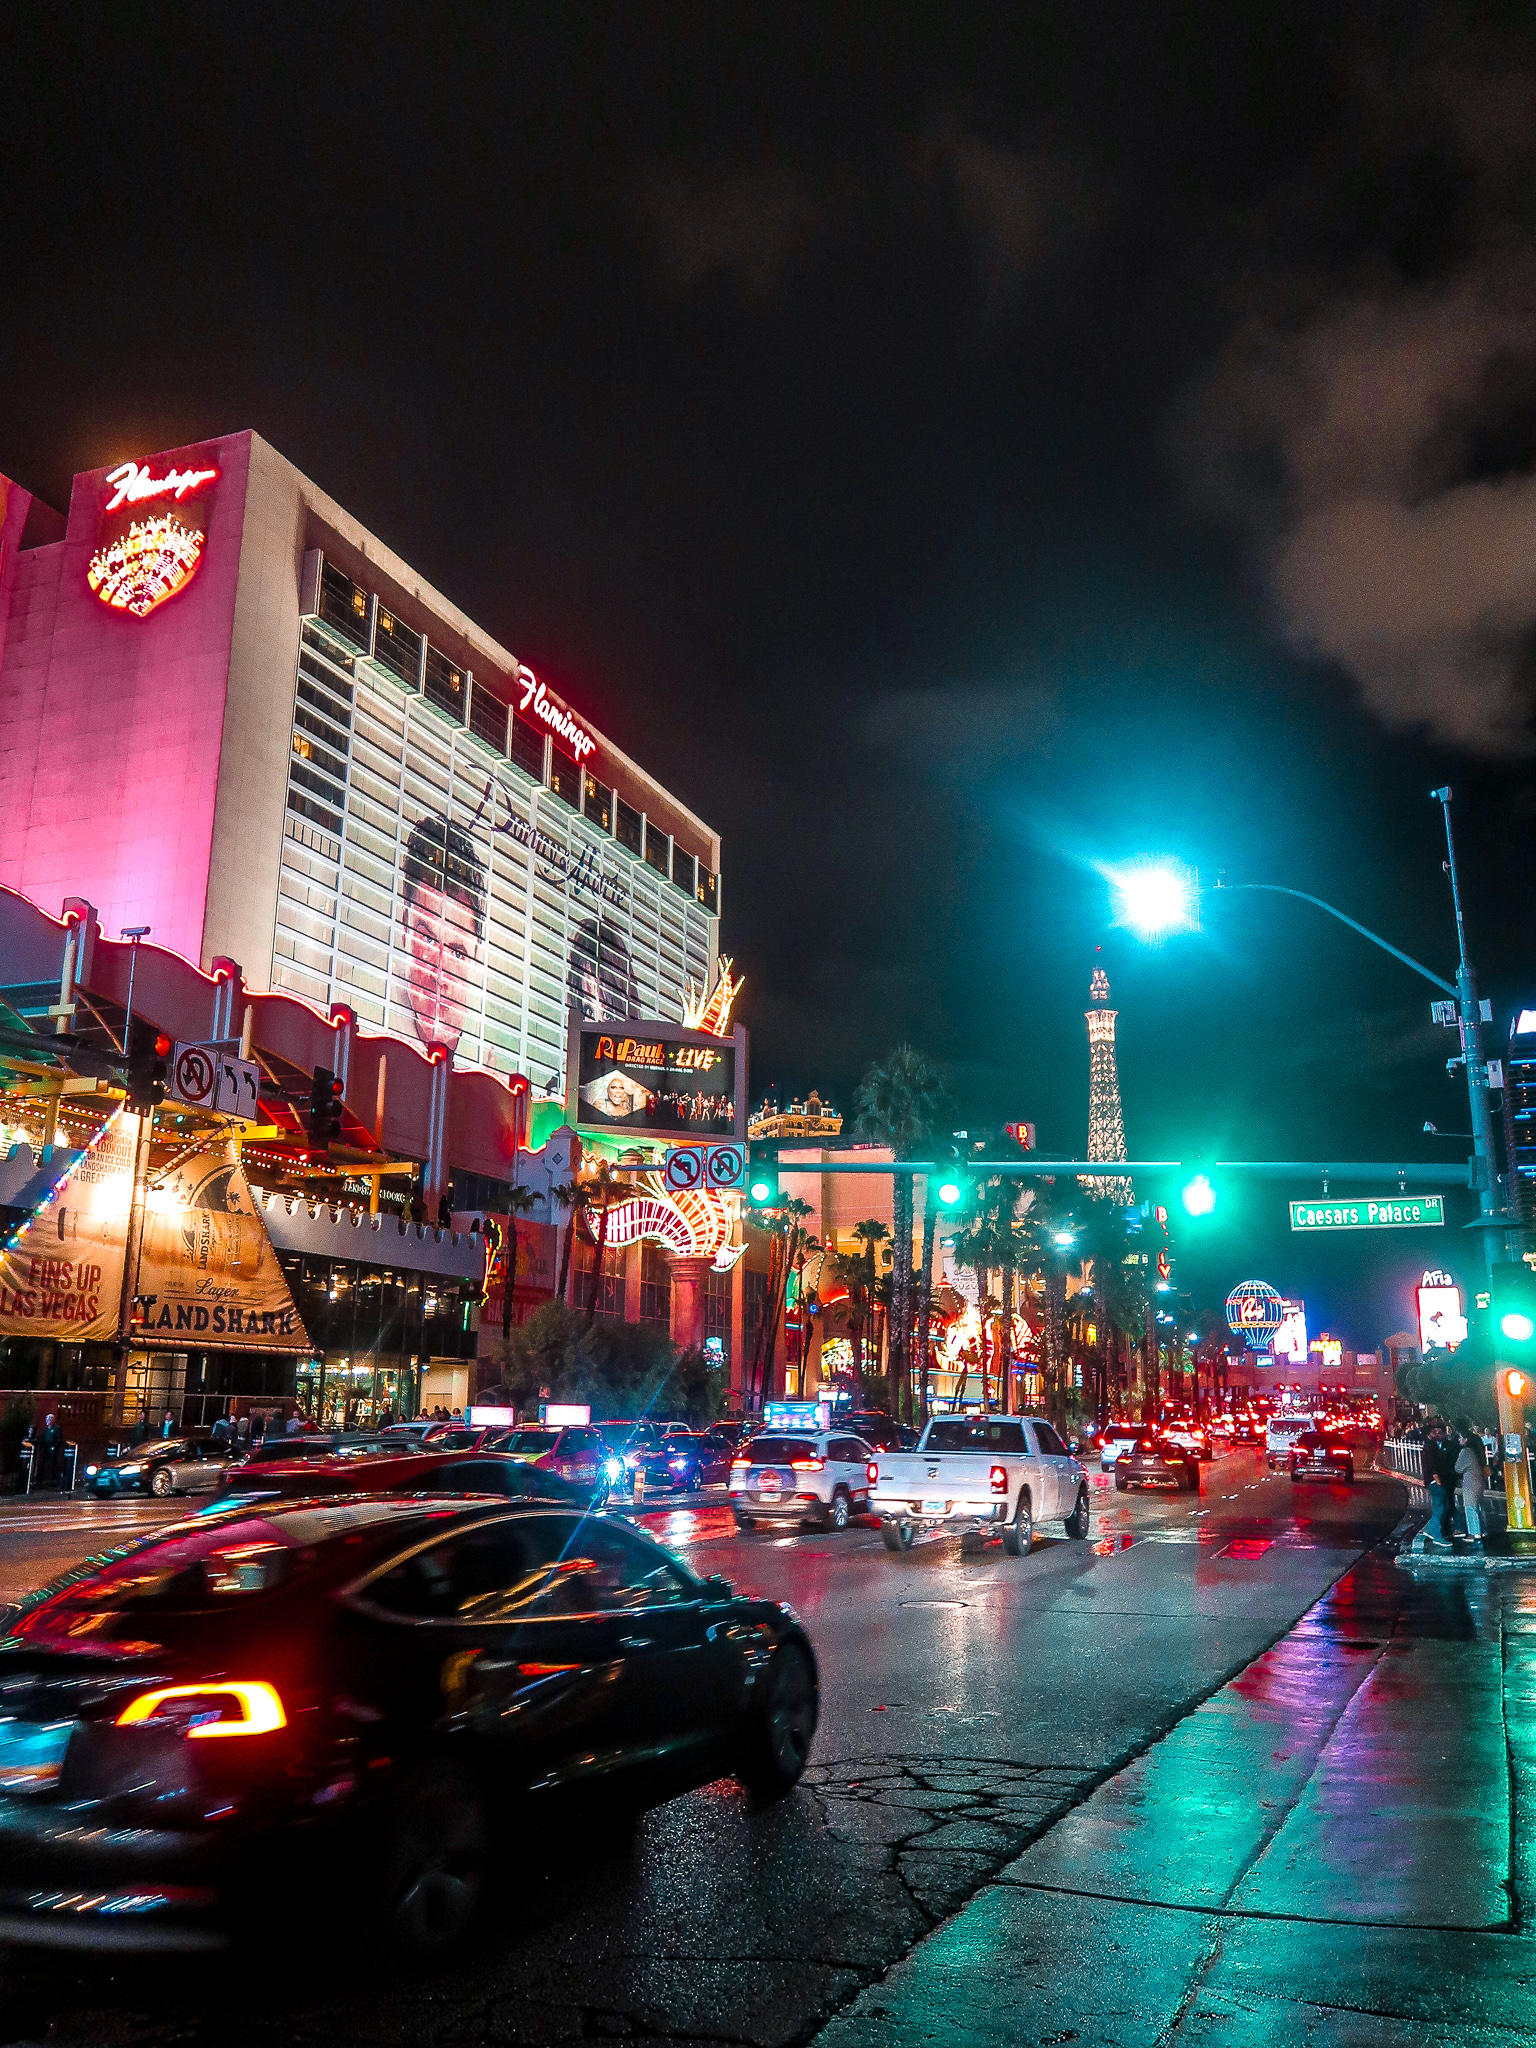 Flamingo Las Vegas Boulevard The Strip in the Rain | 7 Night Itinerary for Las Vegas | If you're looking to plan things to do in Vegas here's what we got up to on our 6th visit | Travel Tips | Elle Blonde Luxury Lifestyle Destination Blog